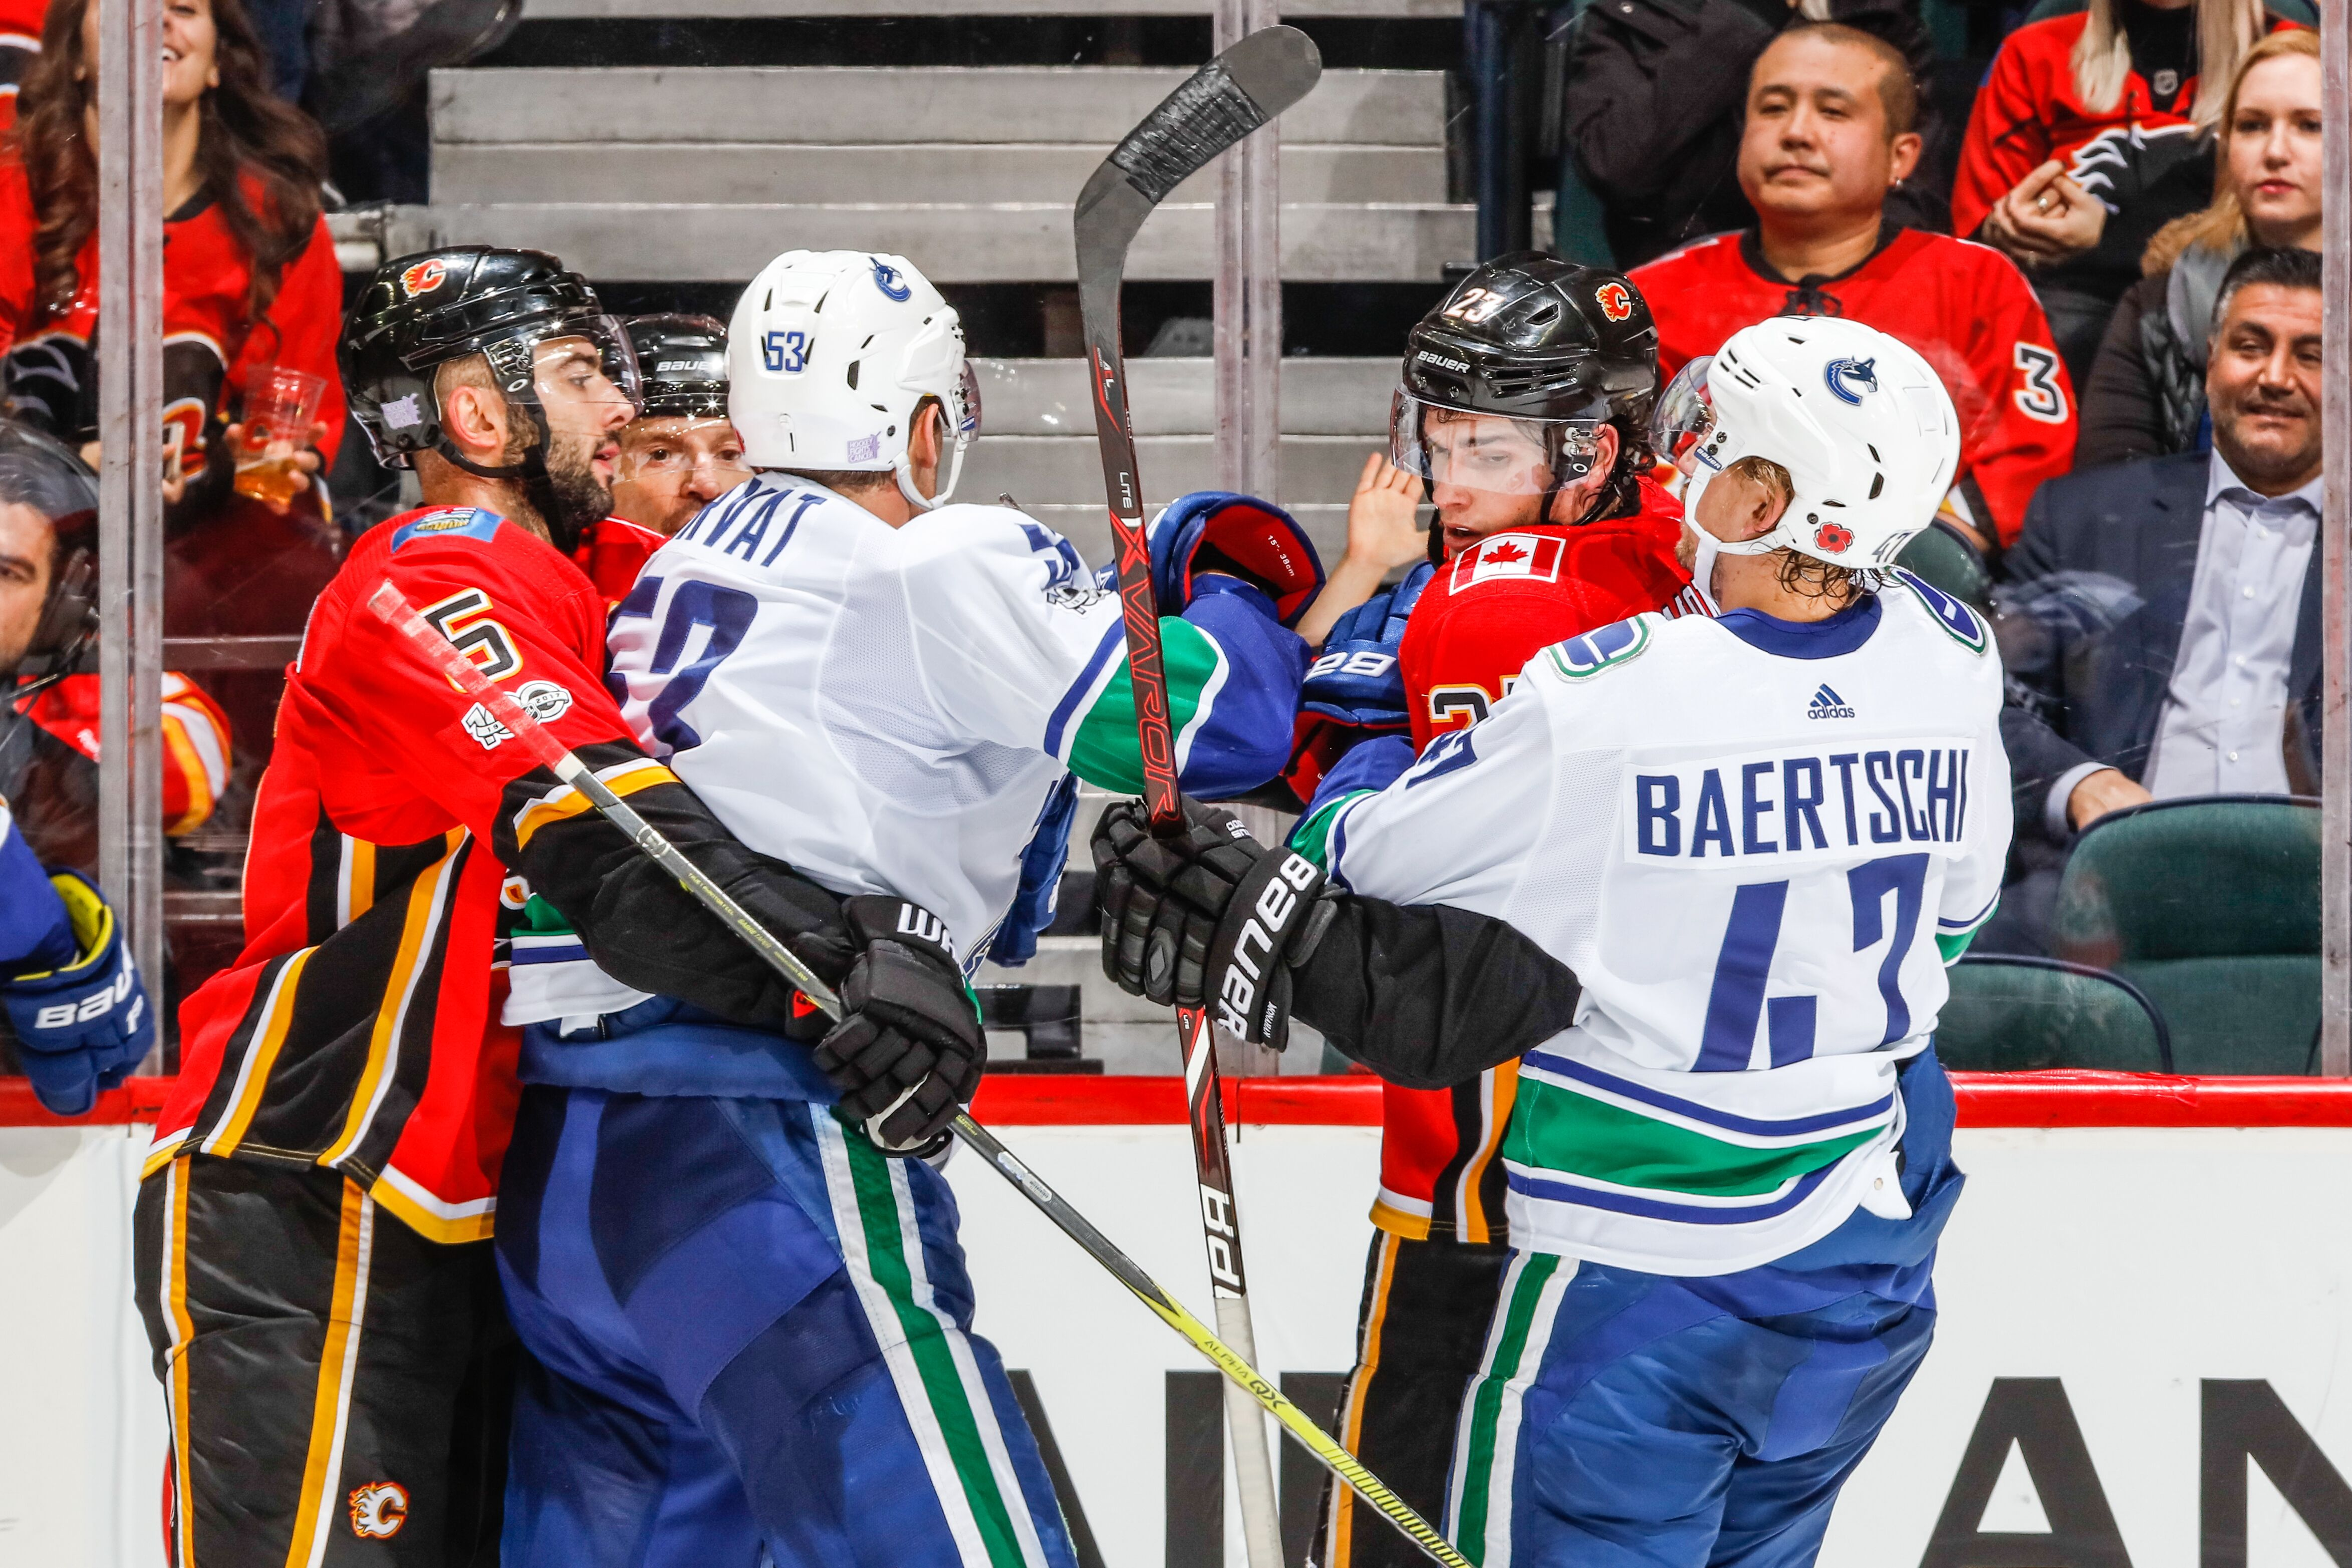 873452154-vancouver-canucks-vs-calgary-flames.jpg